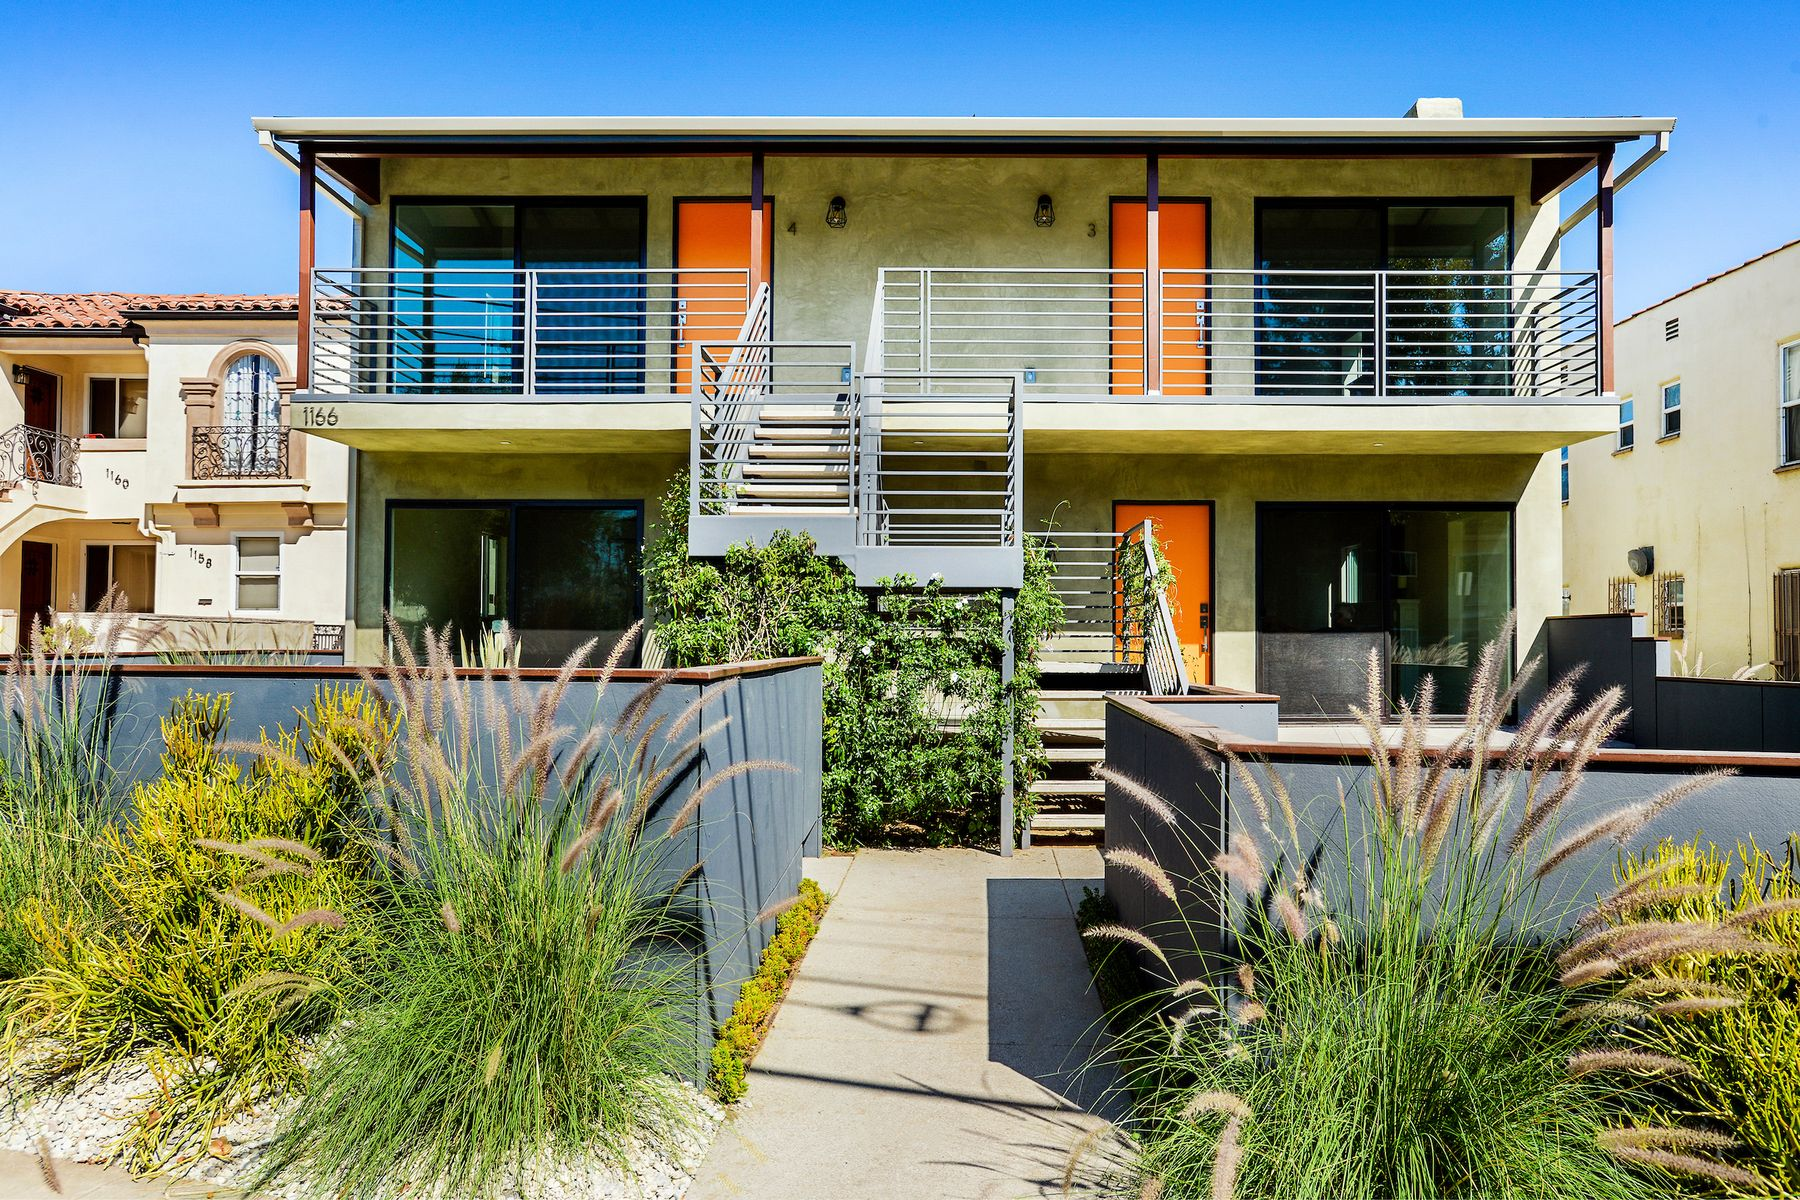 Multi-Family Homes for Active at 1166 South Cochran Avenue Los Angeles, California 90019 United States